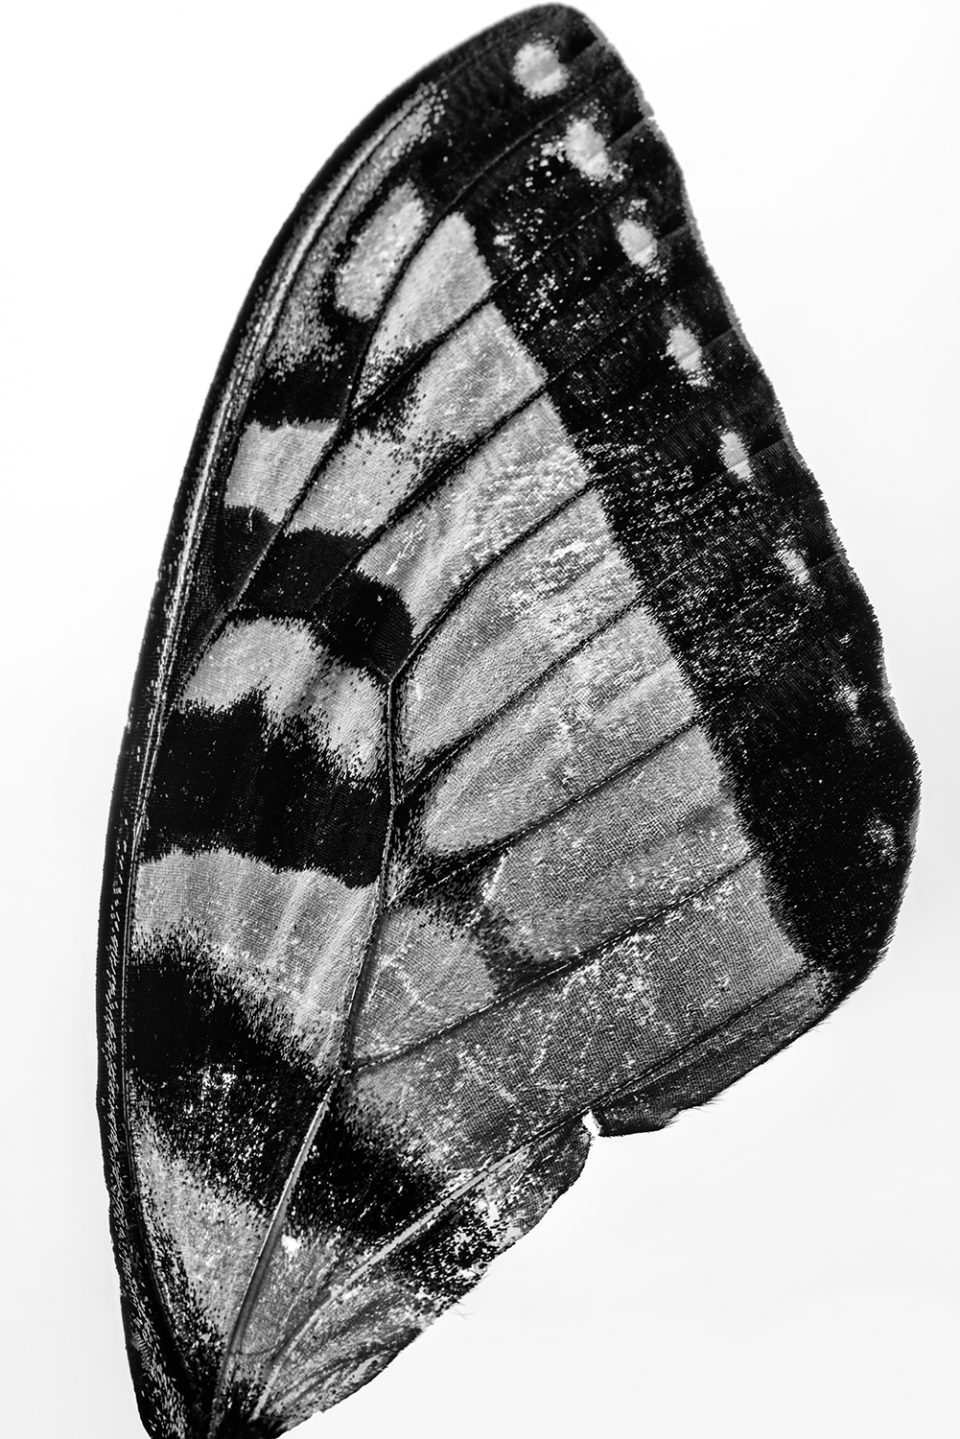 Black and white macro photograph of a found butterfly wing